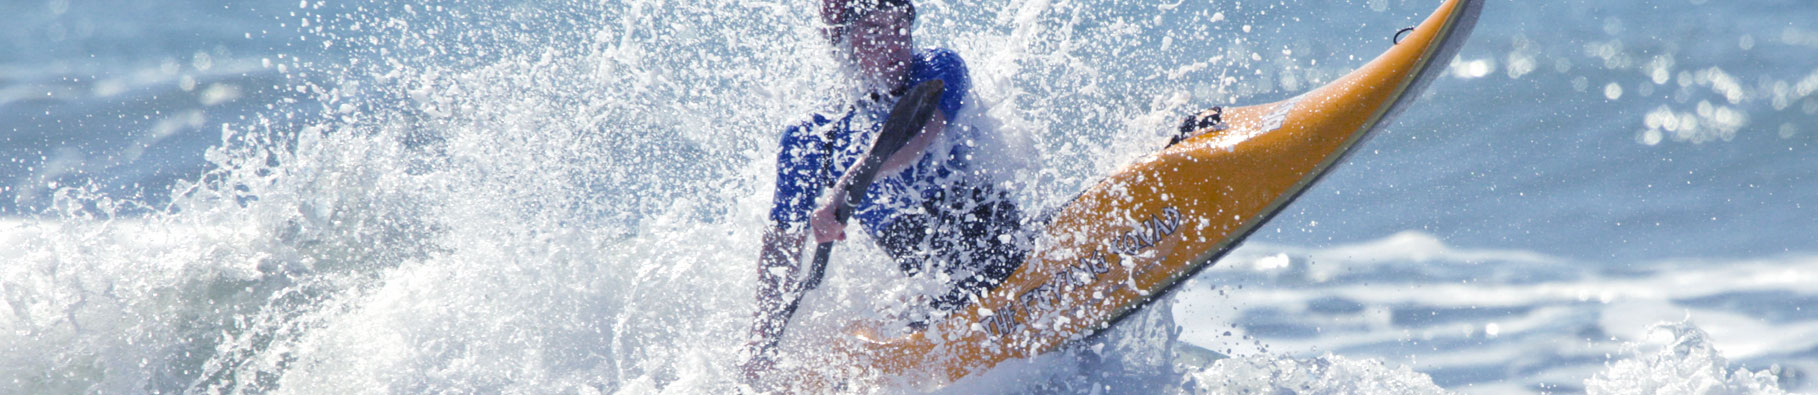 Surf kayaking course at Shoreline in Bude, Cornwall